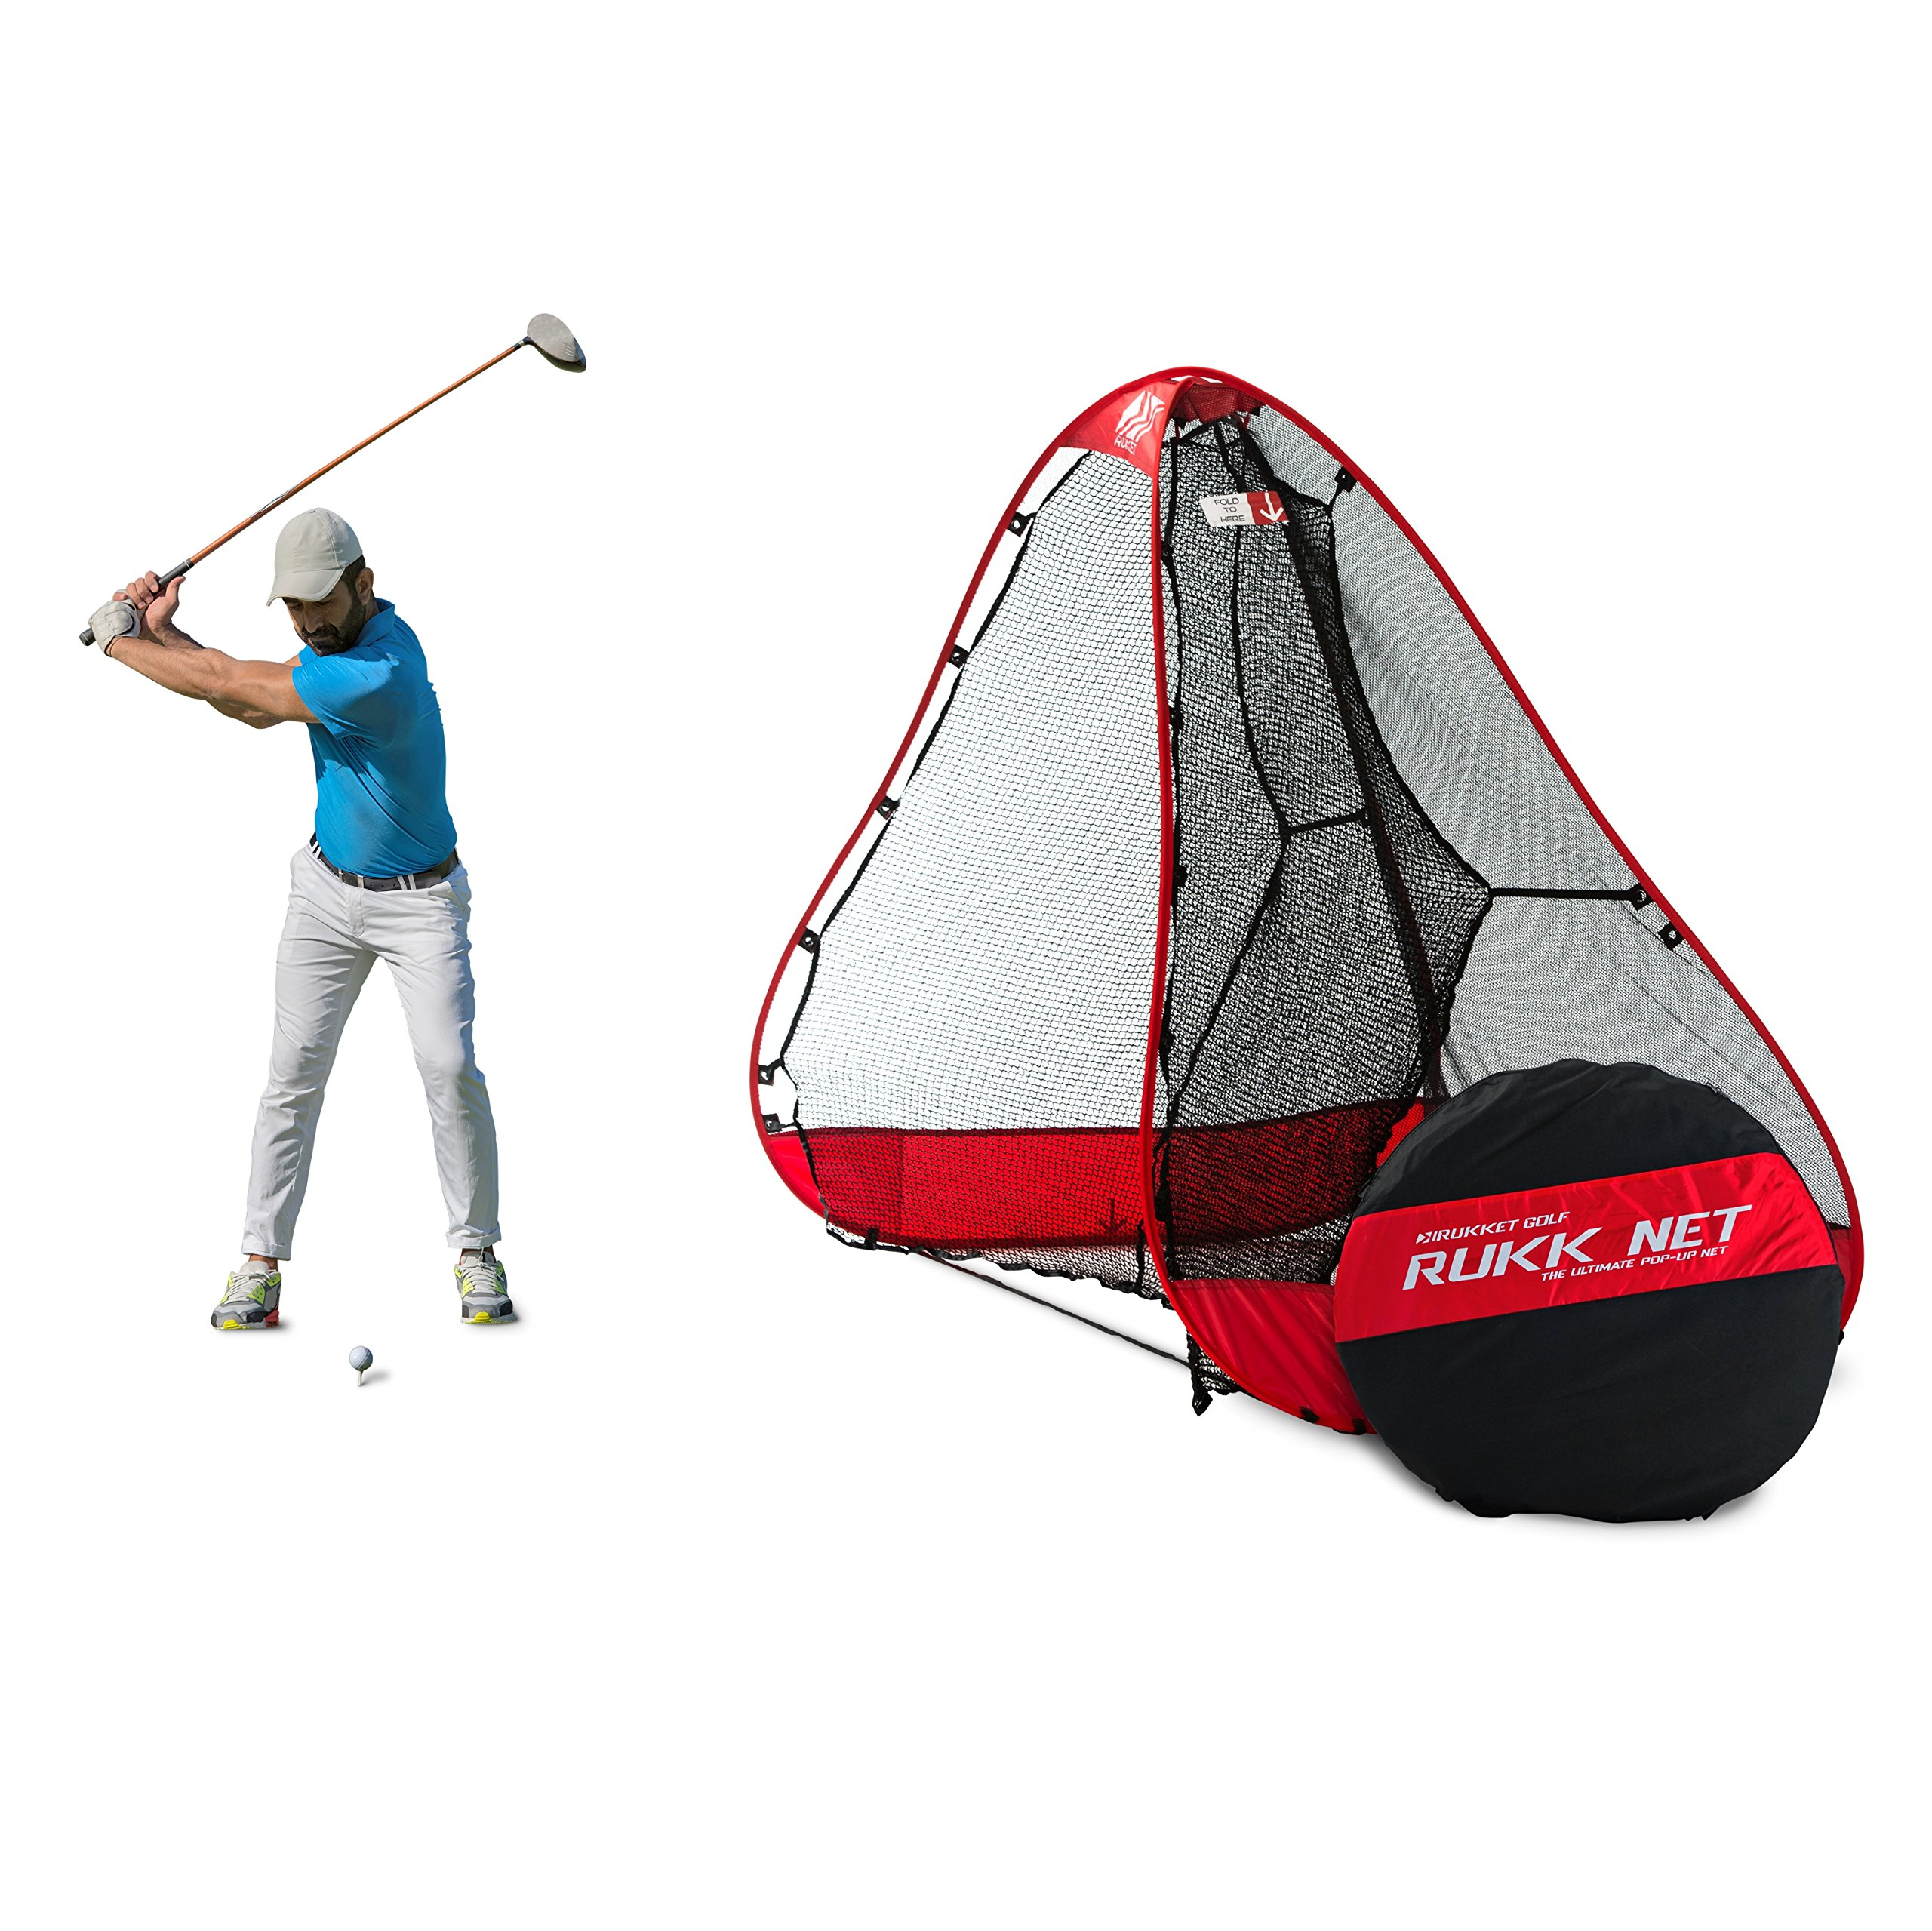 Rukket 10x7ft Pop Up Golf Net | Orginal Rukknet | Practice Driving Indoor and Outdoor | Backyard Swing Training Aids